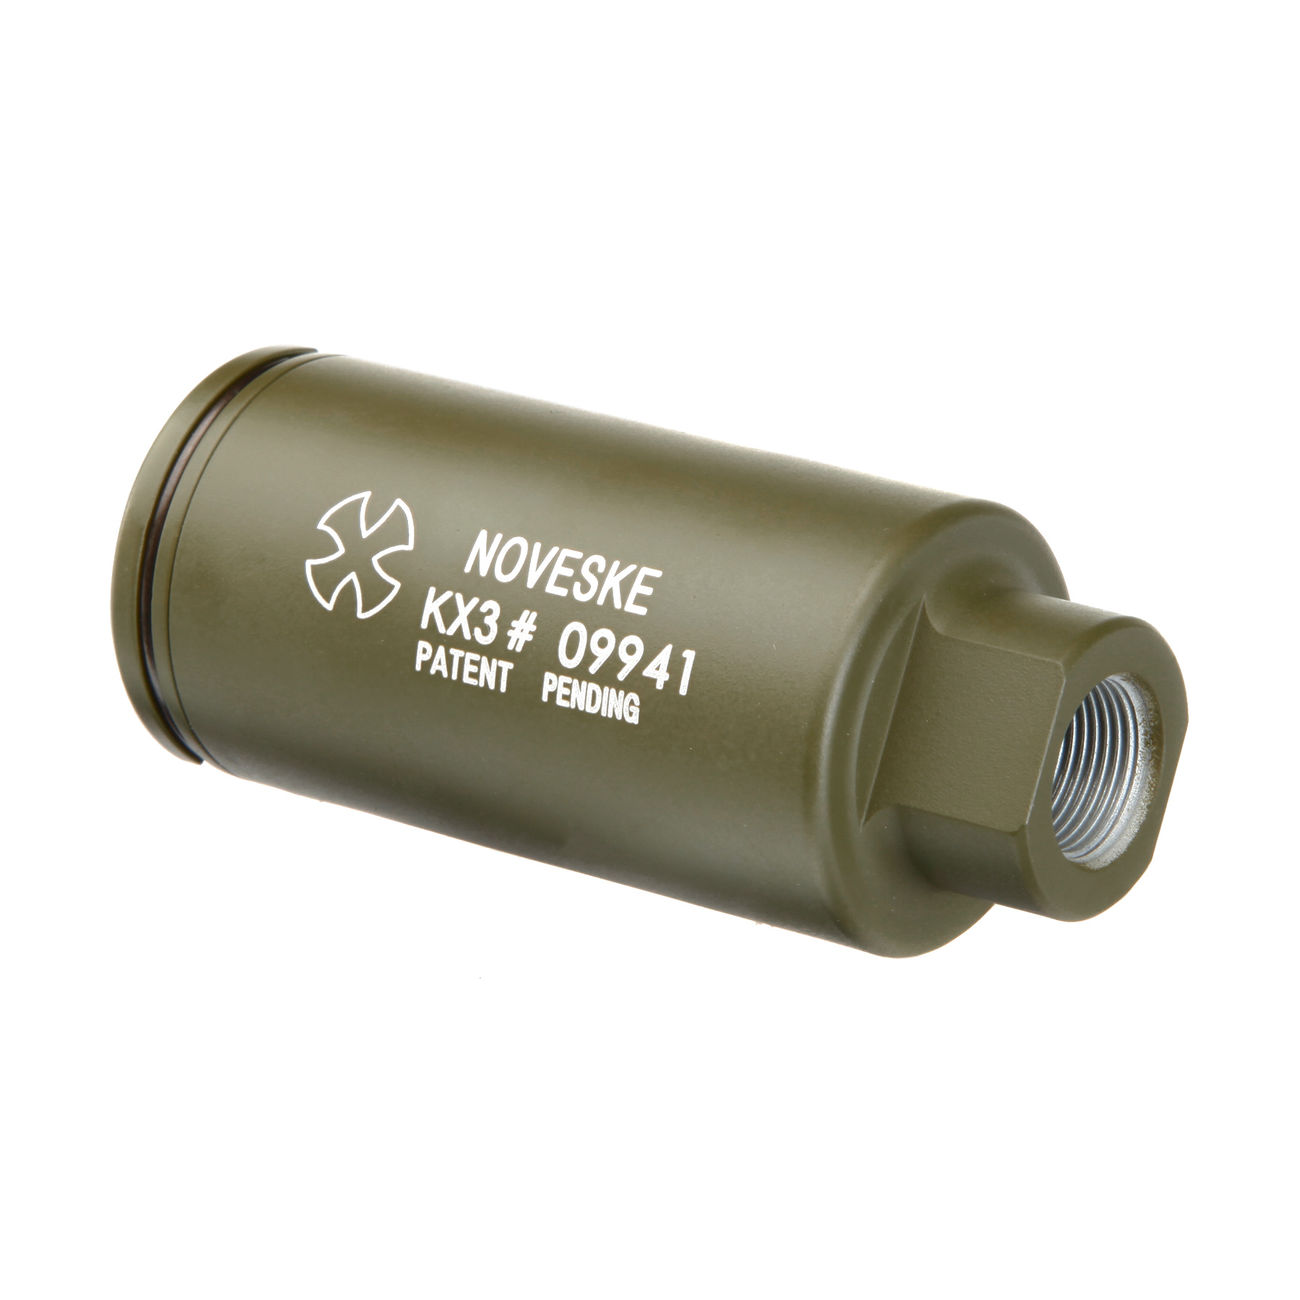 MadBull / Noveske KX3 Aluminium Amplifier Flash-Hider oliv 14mm- 4